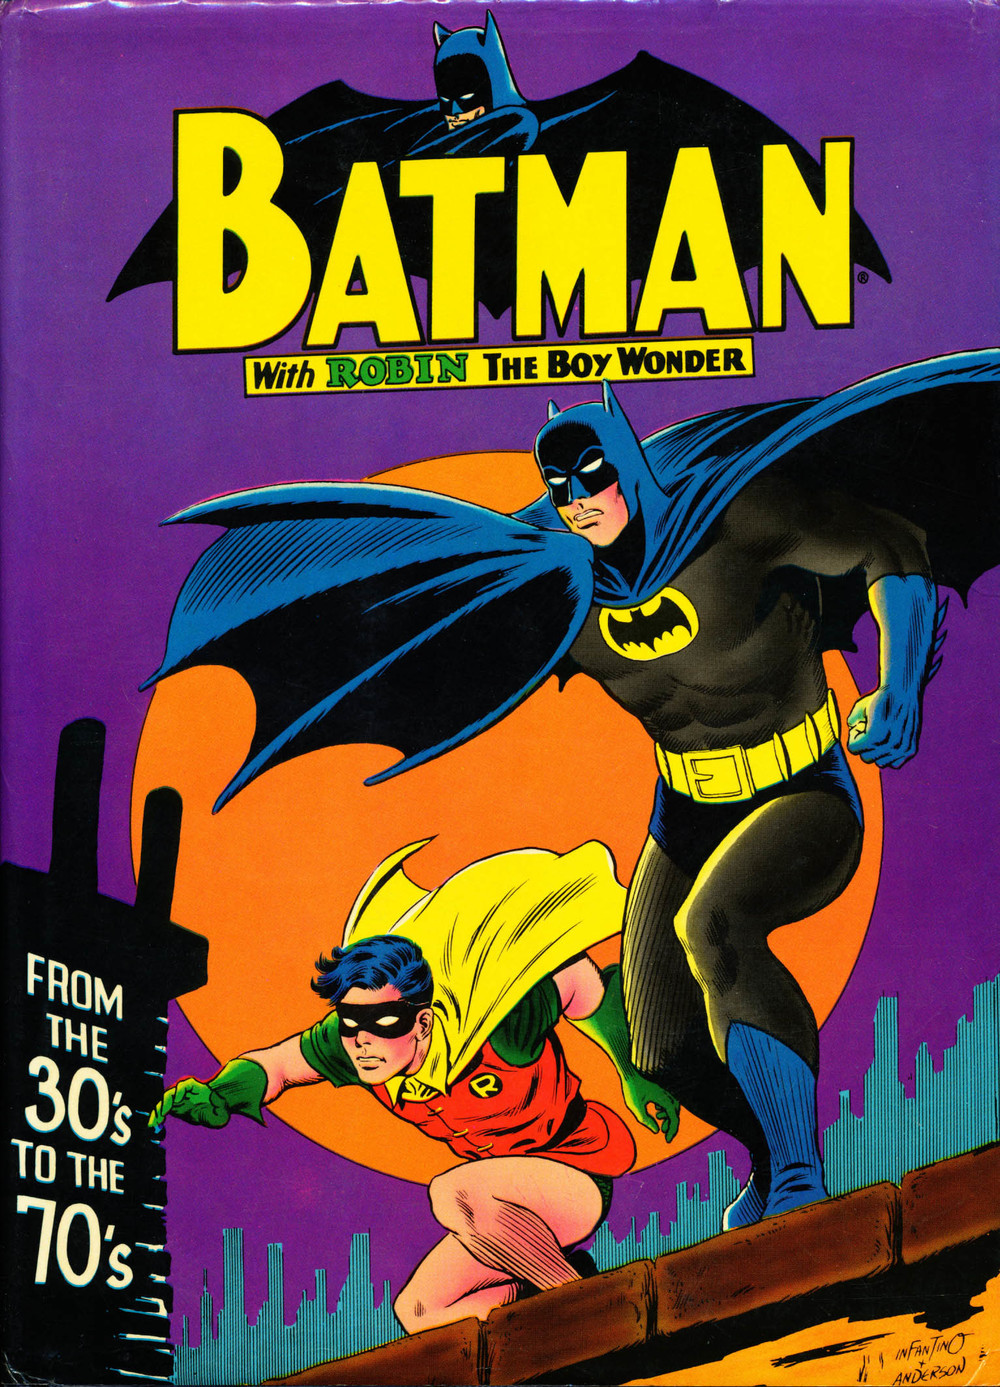 The pleasure I found in  Batman From the 30s to the 70s  was real, but so was the sadness.